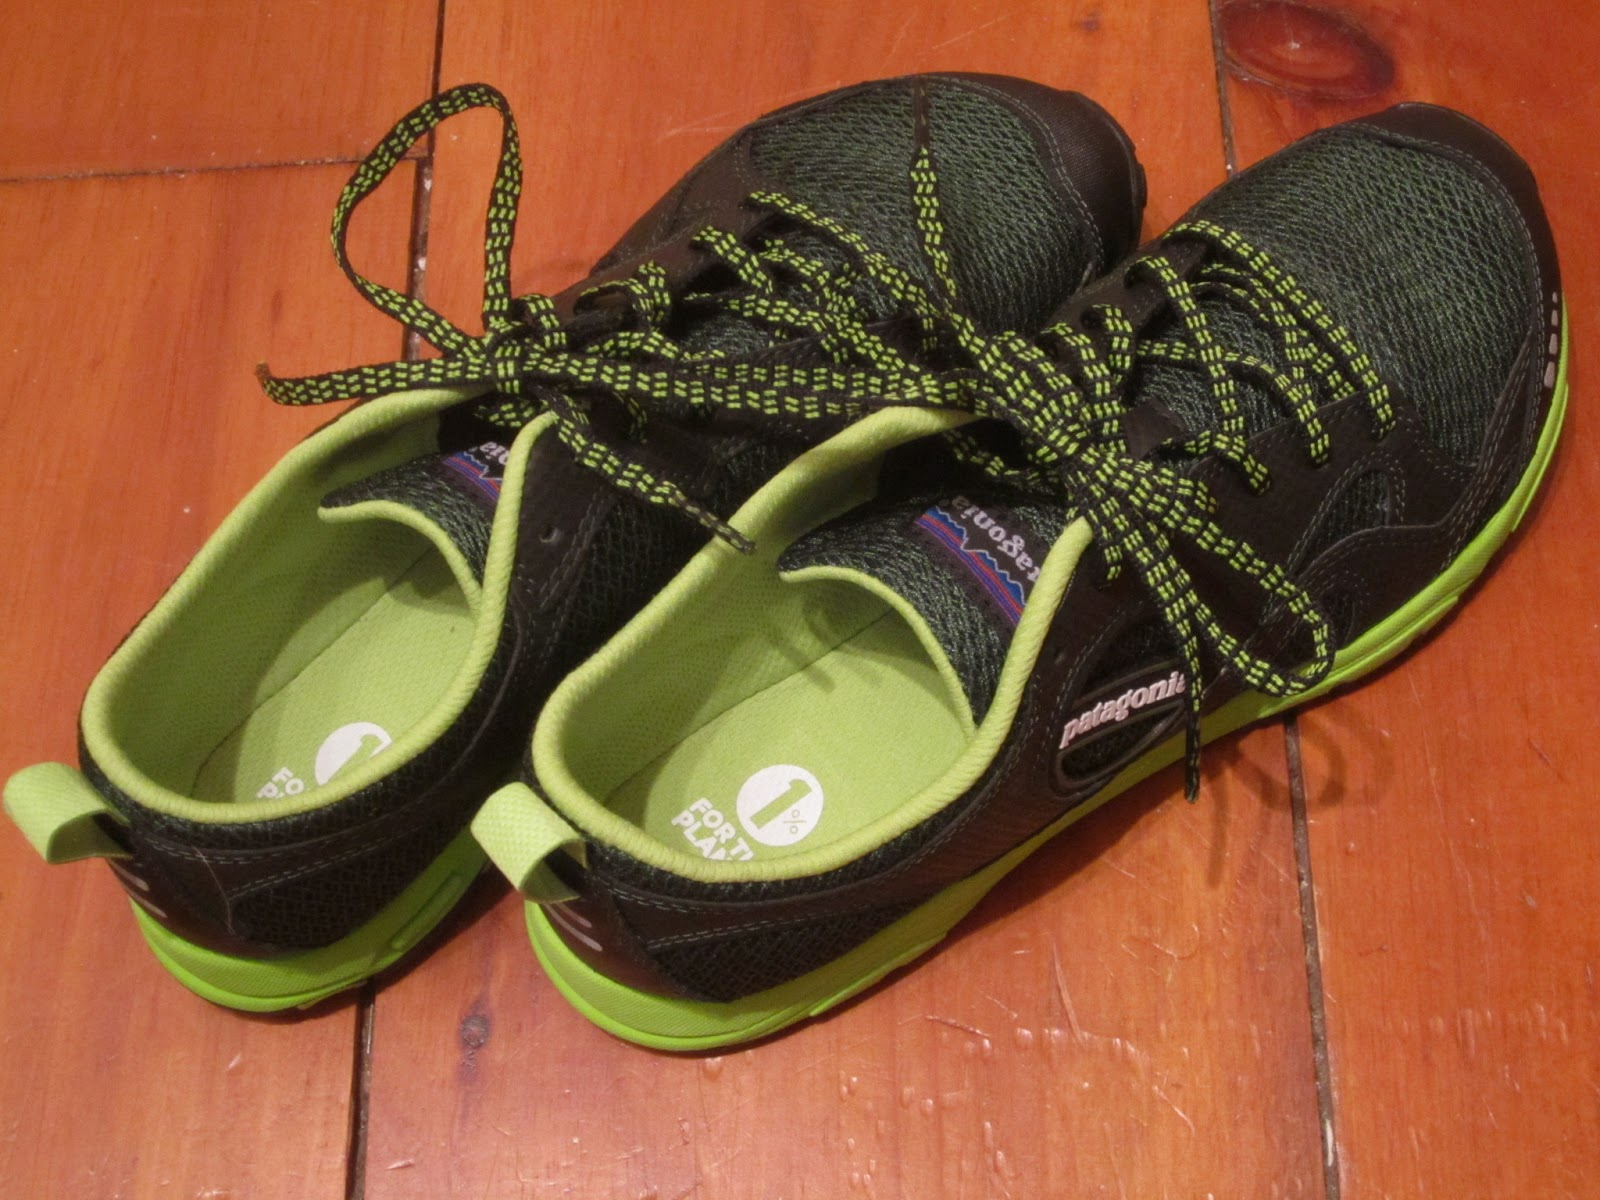 Dirty Runner – Patagonia Evermore Trail Running Shoe Review